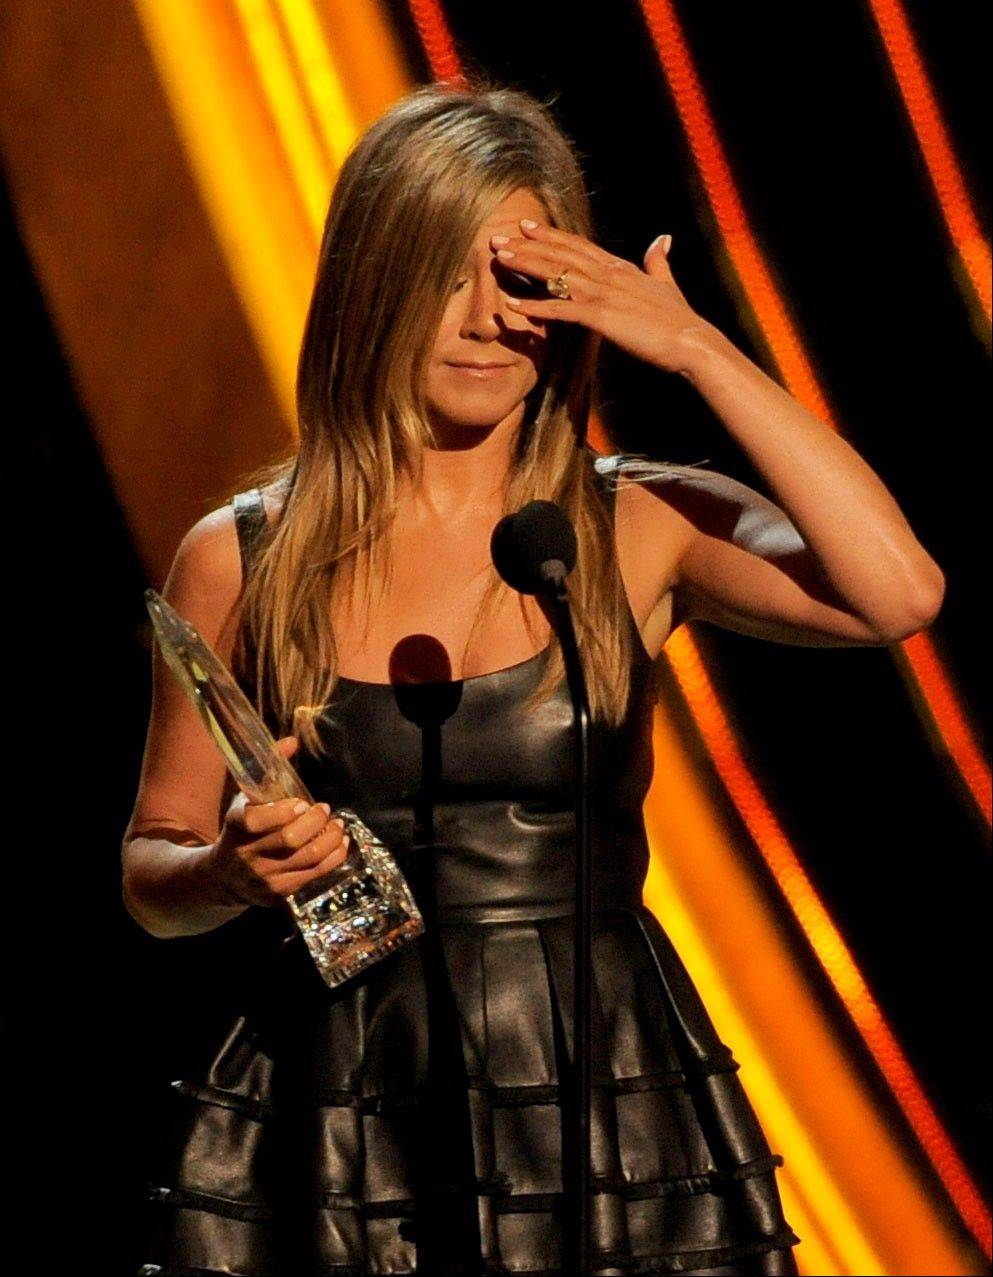 Jennifer Aniston accepts the award for favorite comedic movie actress at the People's Choice Awards at the Nokia Theatre on Wednesday Jan. 9, 2013, in Los Angeles.